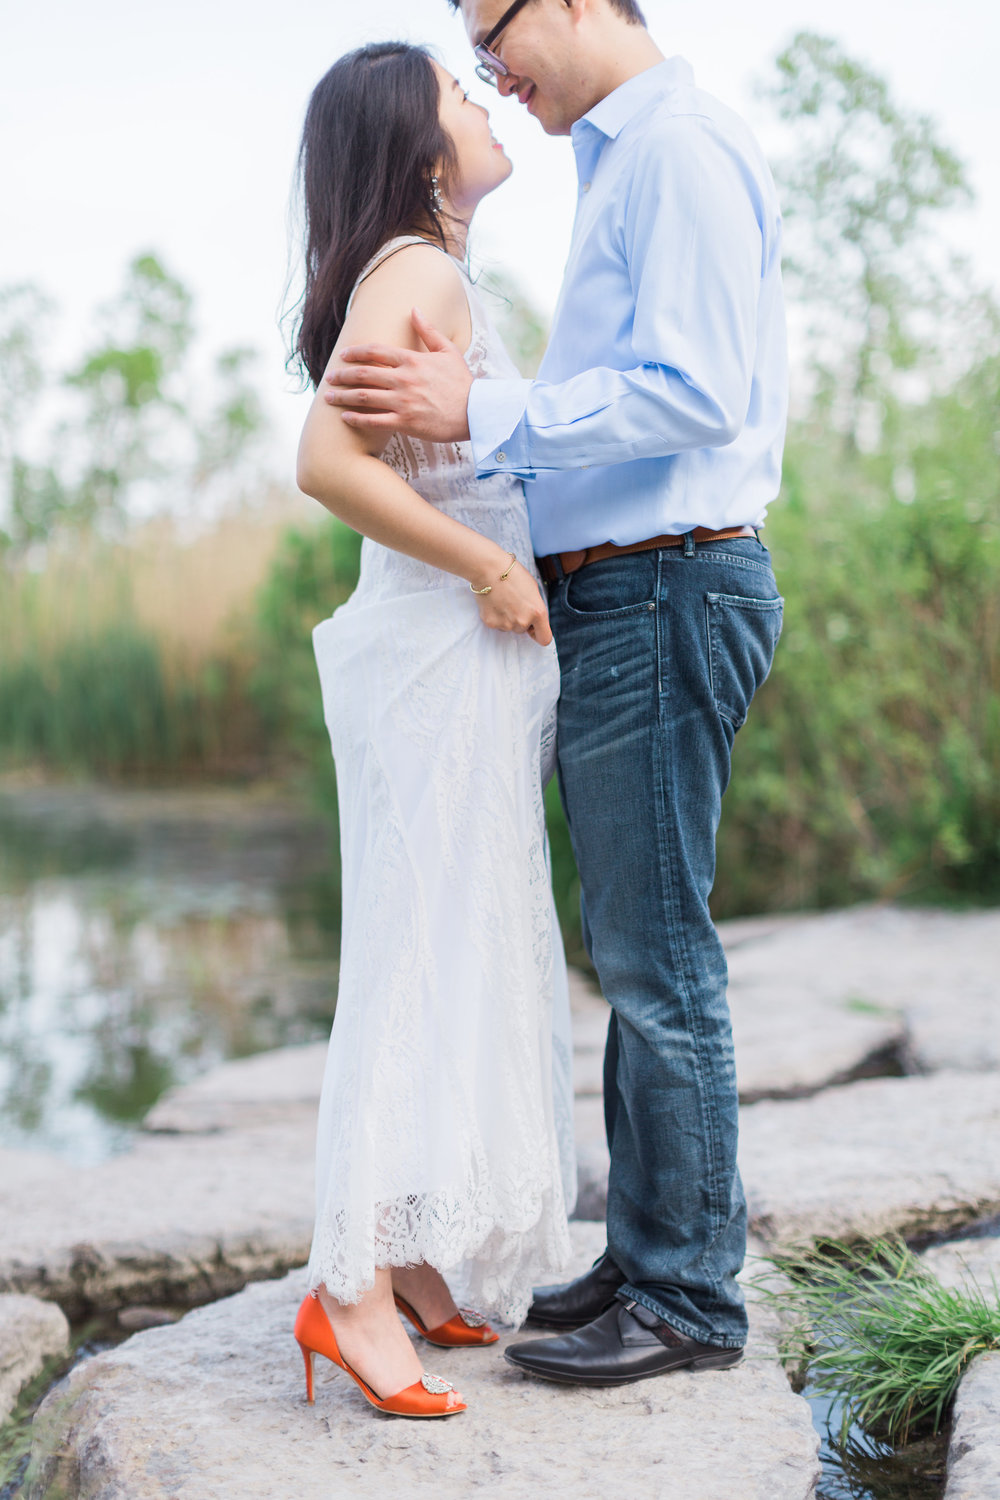 ScarboroughBluffsEngagementSession-1452.jpg